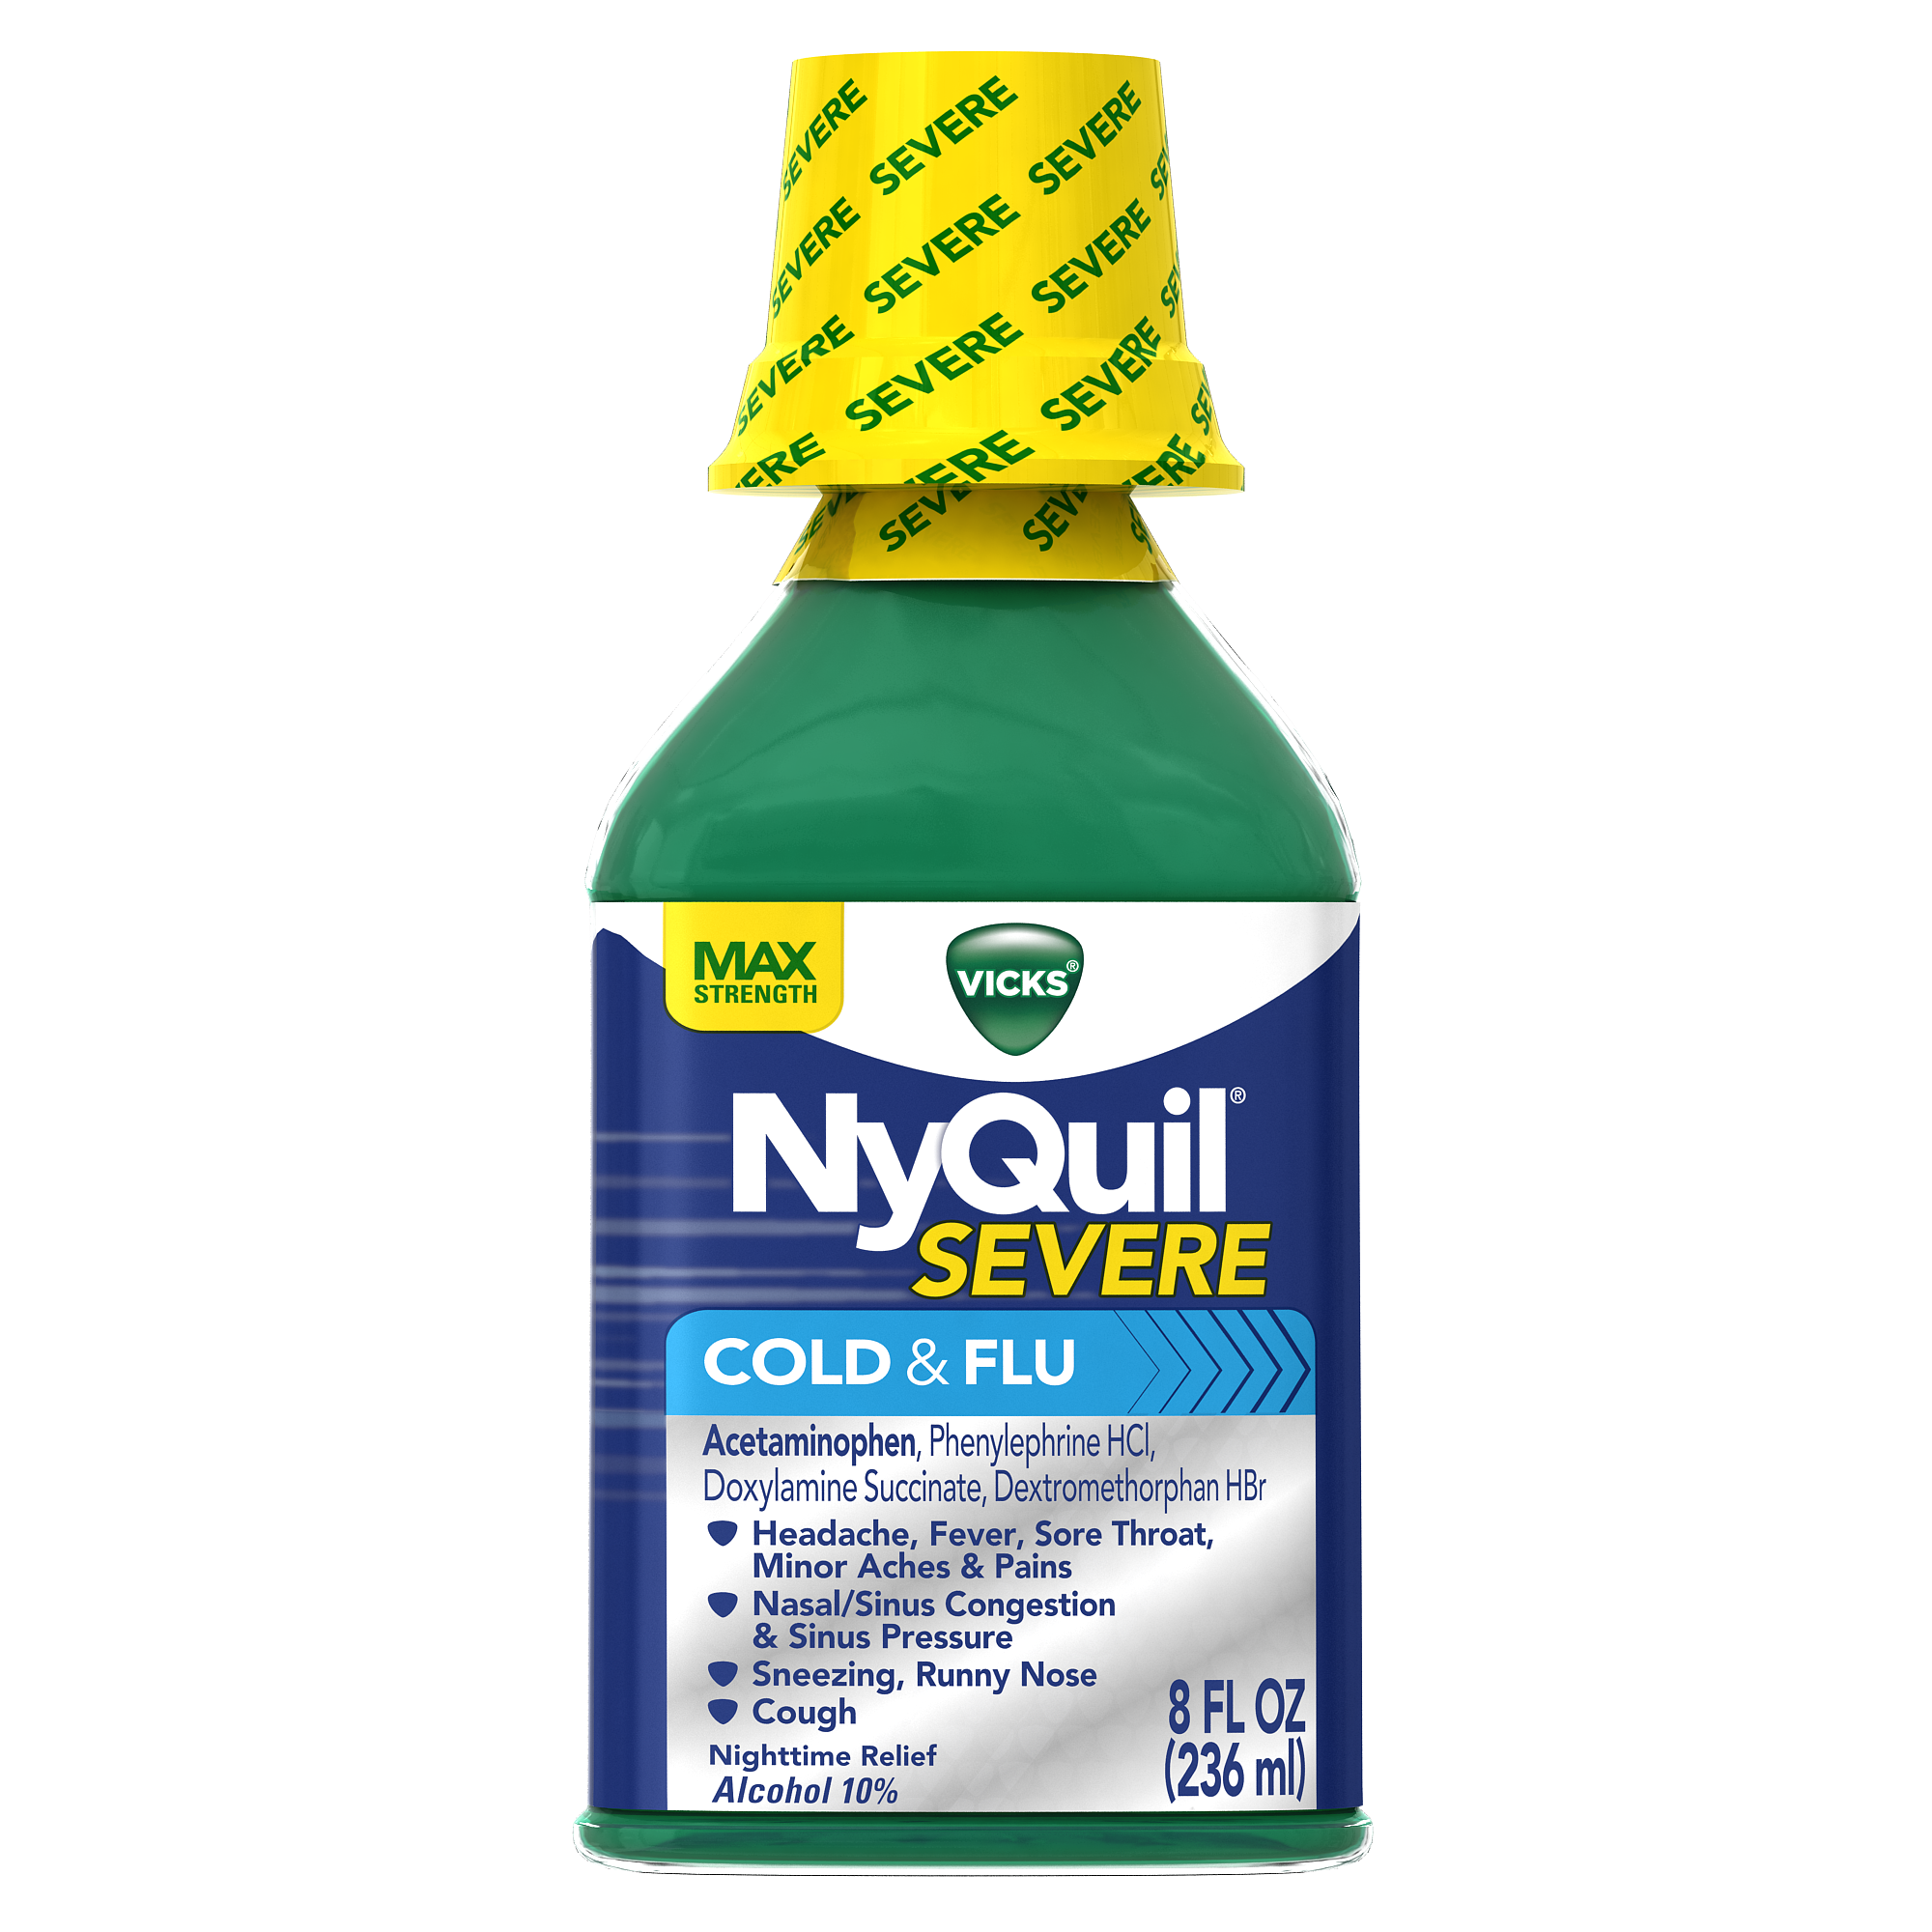 Nyquil Cold Flu Vicks